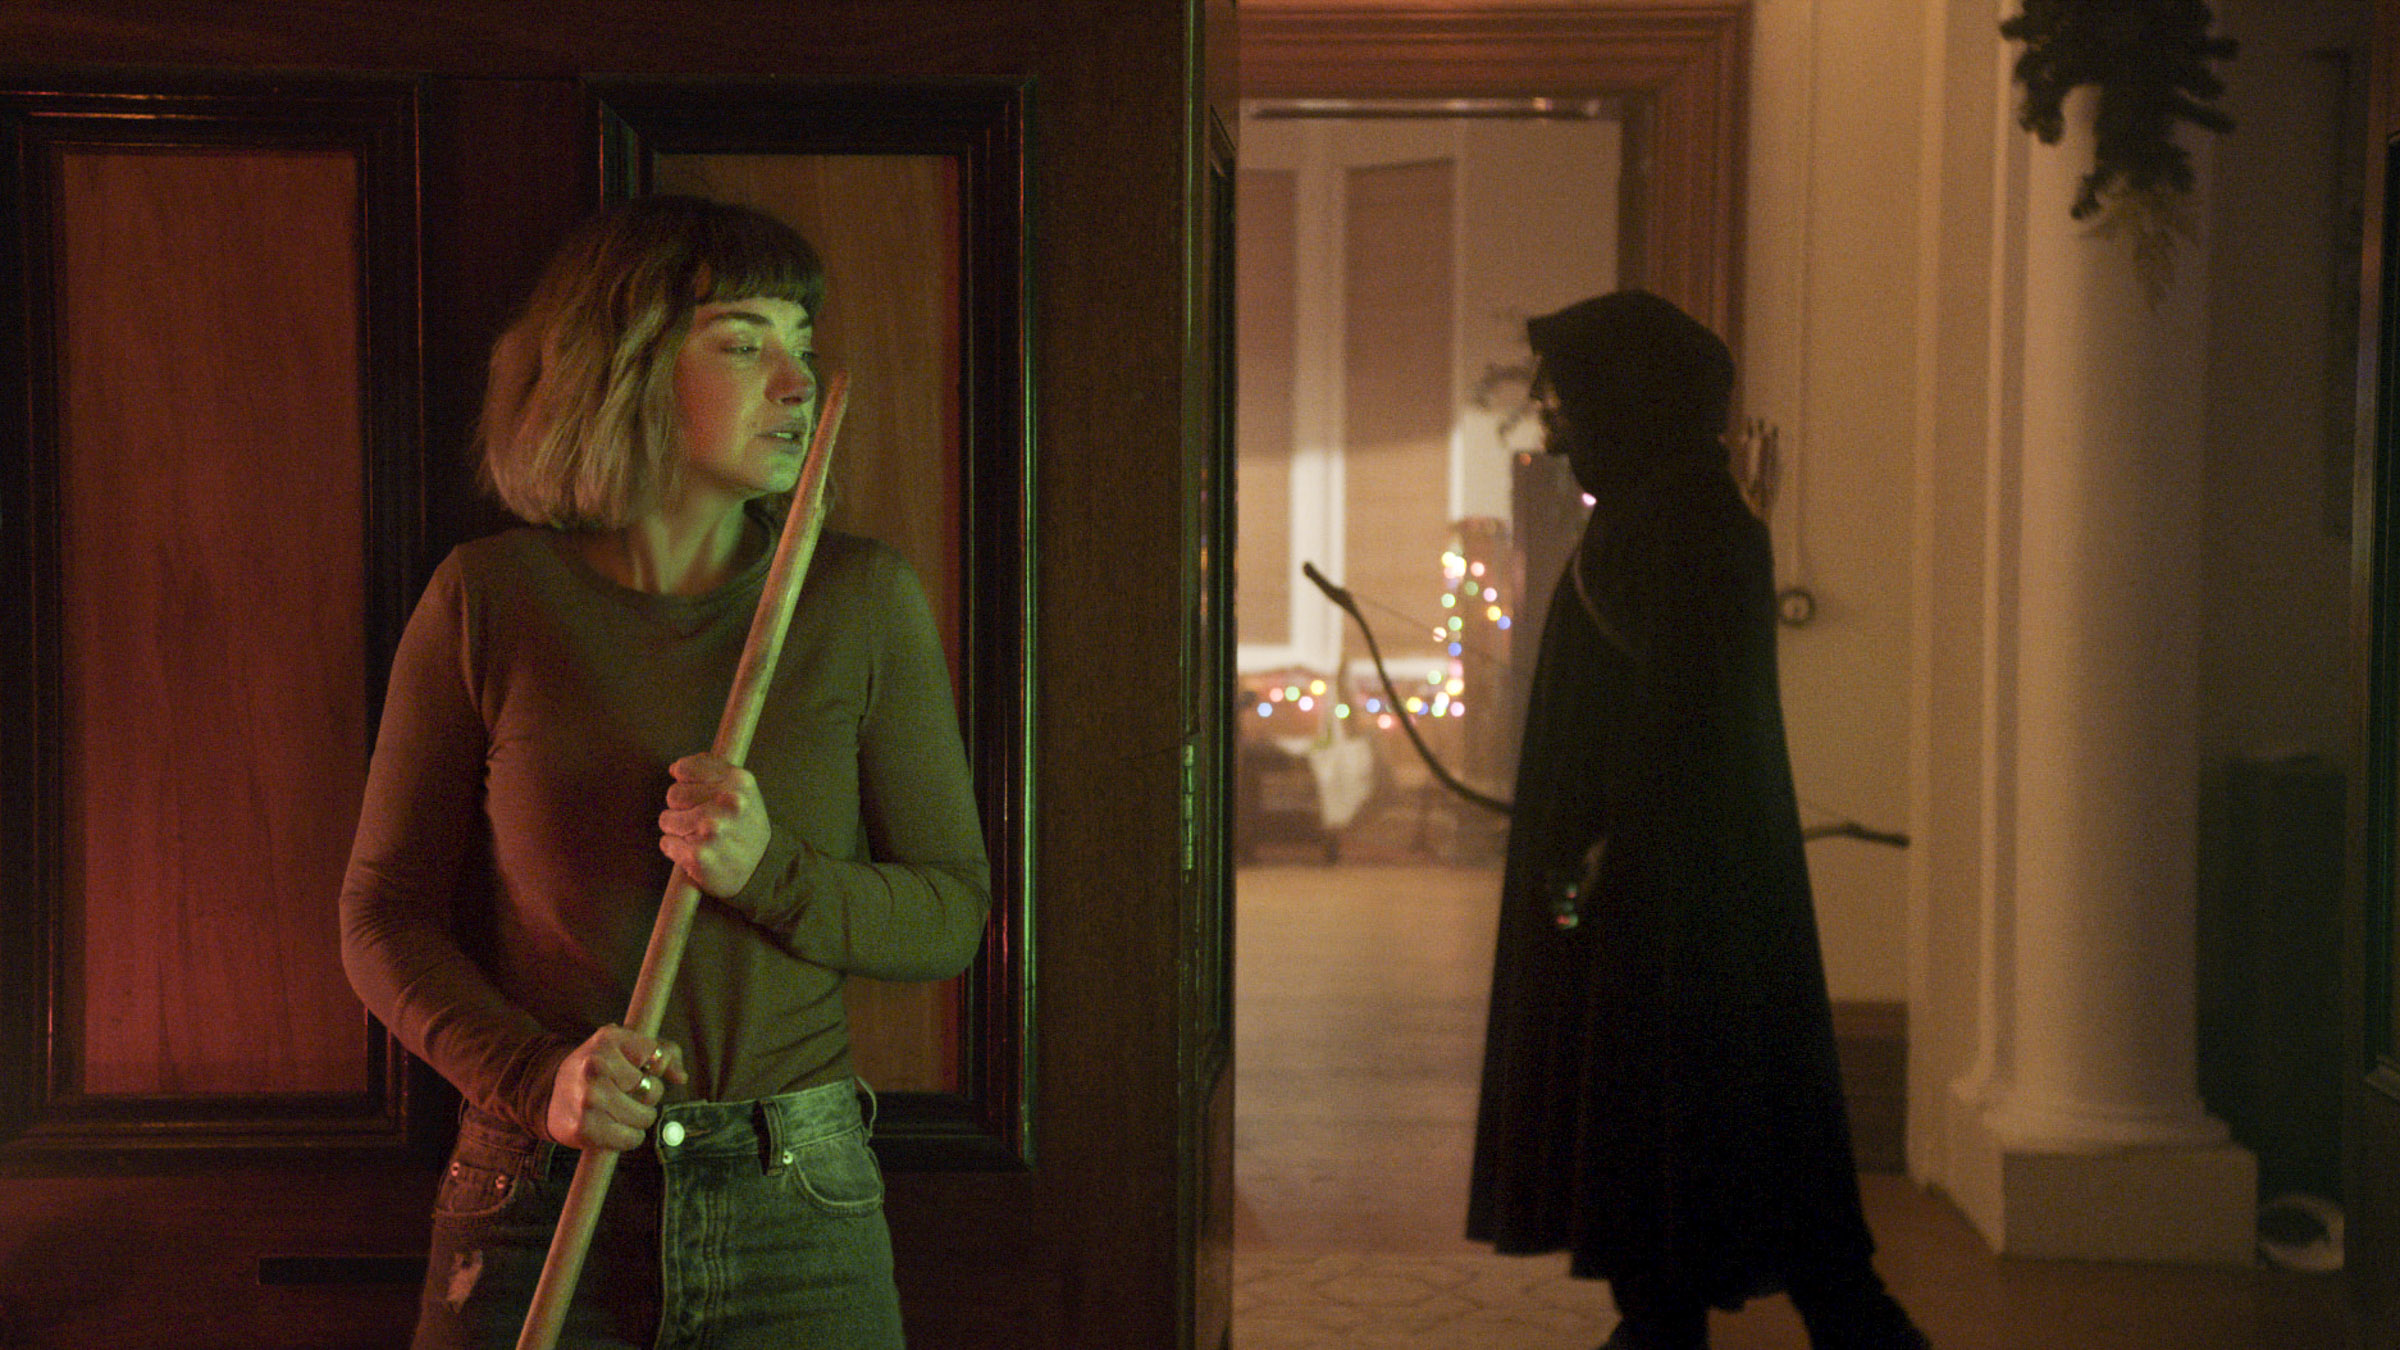 The new Black Christmas reinvents a 1974 slasher for a feminist era